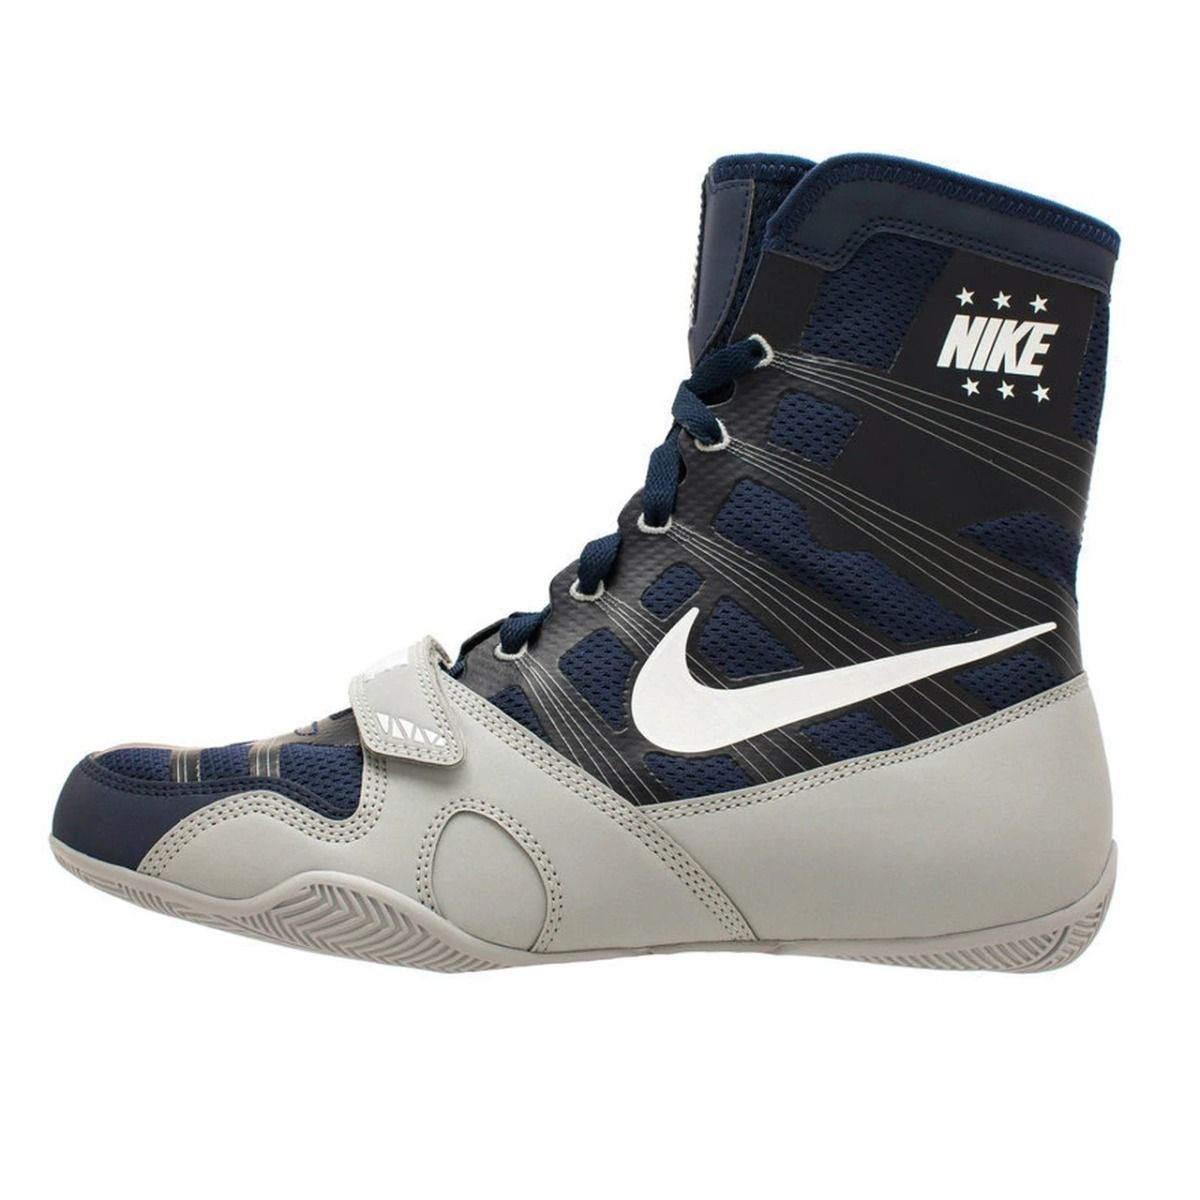 local Prisionero de guerra Milagroso  Nike Hyper KO Boxing Boots - Navy/Silver | Nike Boxing Shoes | Fight  Equipment UK Official Retailer For Nike Boxing